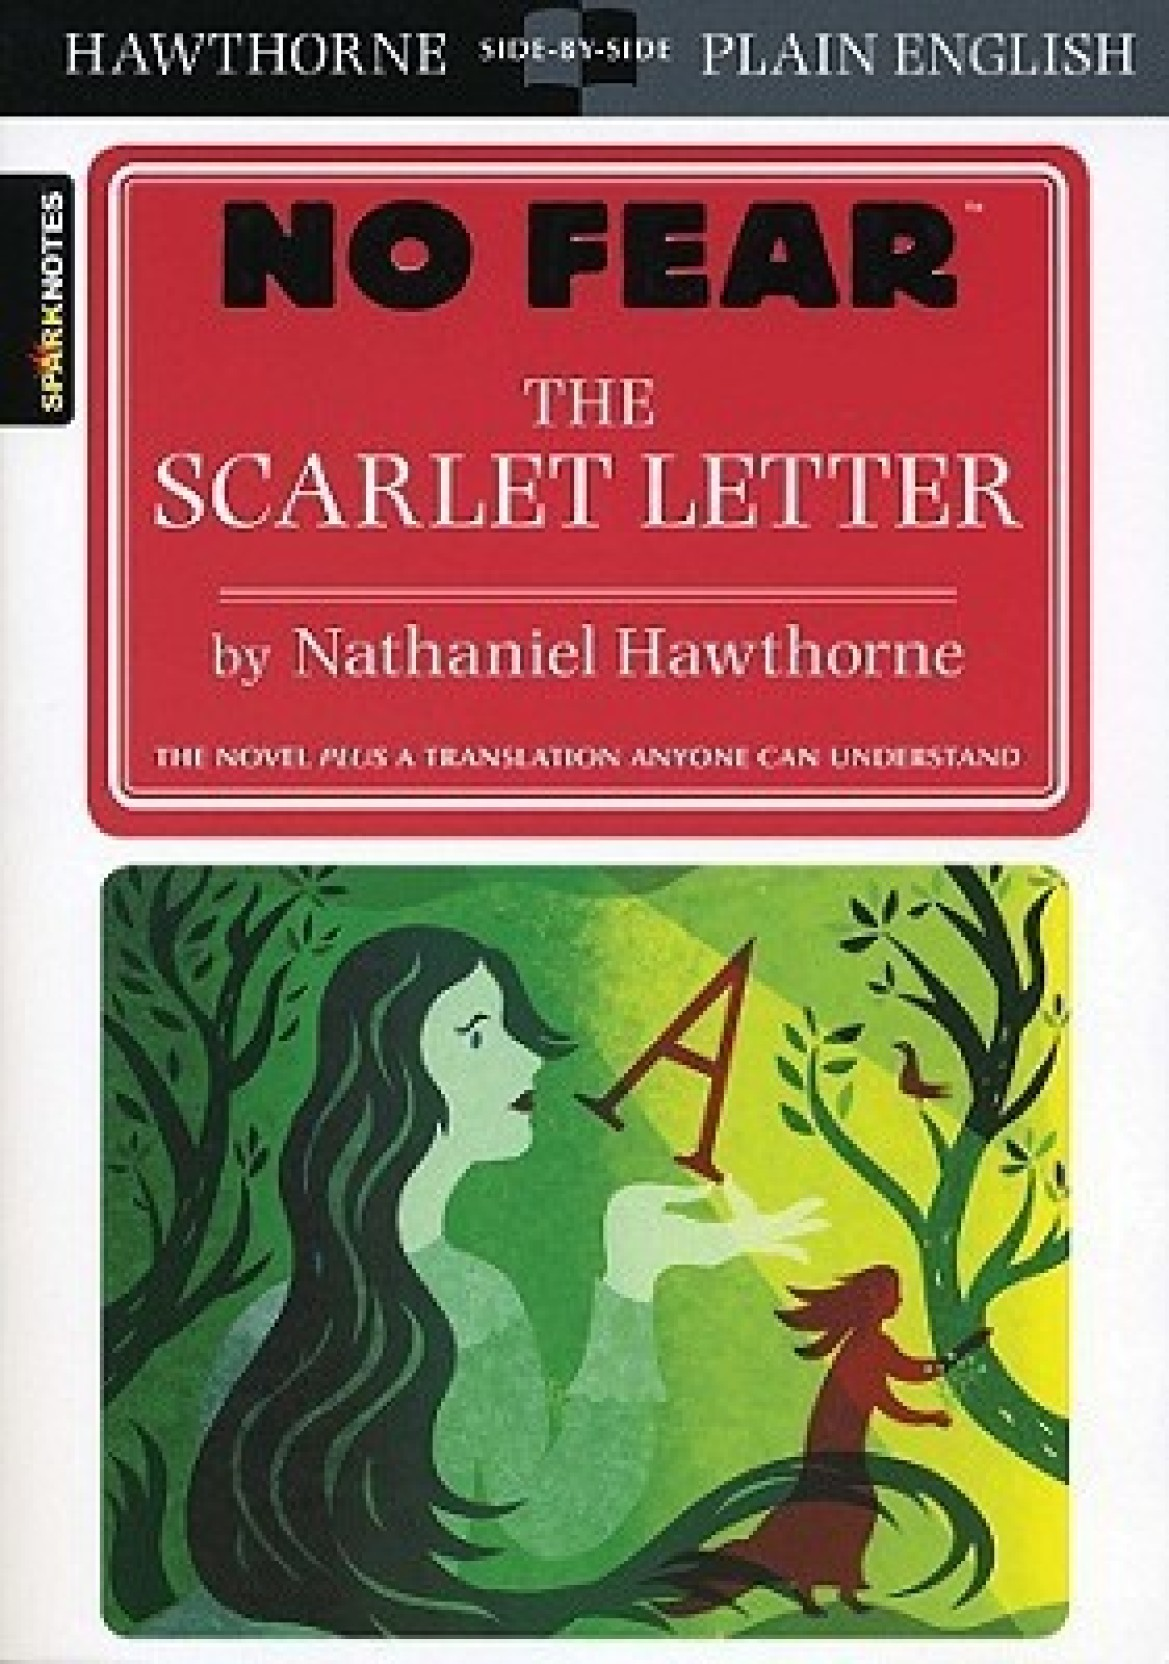 The scarlet letter buy the scarlet letter online at best prices the scarlet letter on offer madrichimfo Choice Image